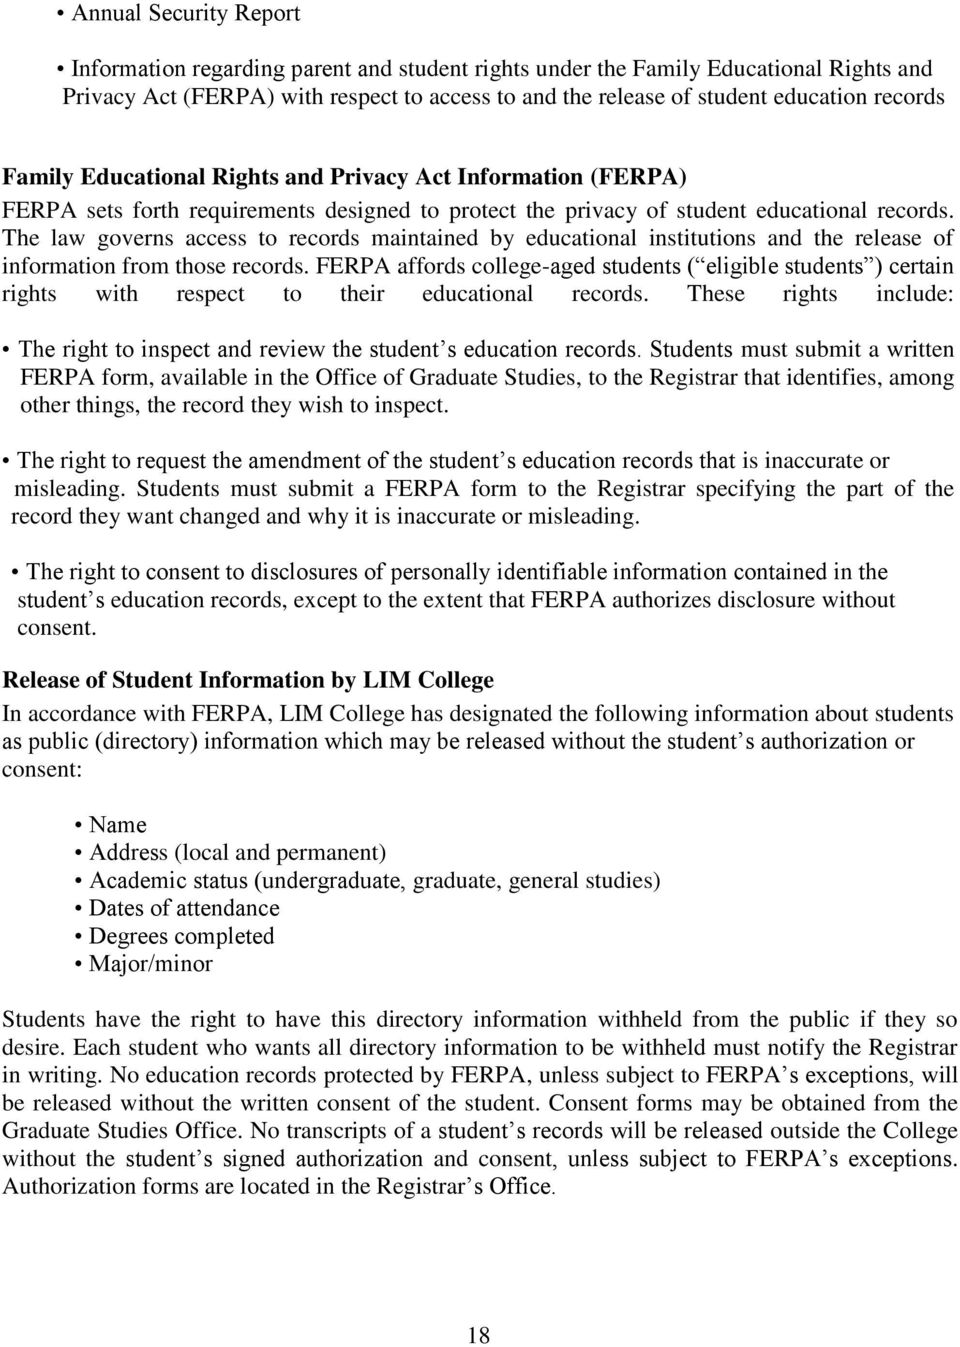 ferpa form queens college  Table of Contents The LIM College Graduate Studies Programs ...